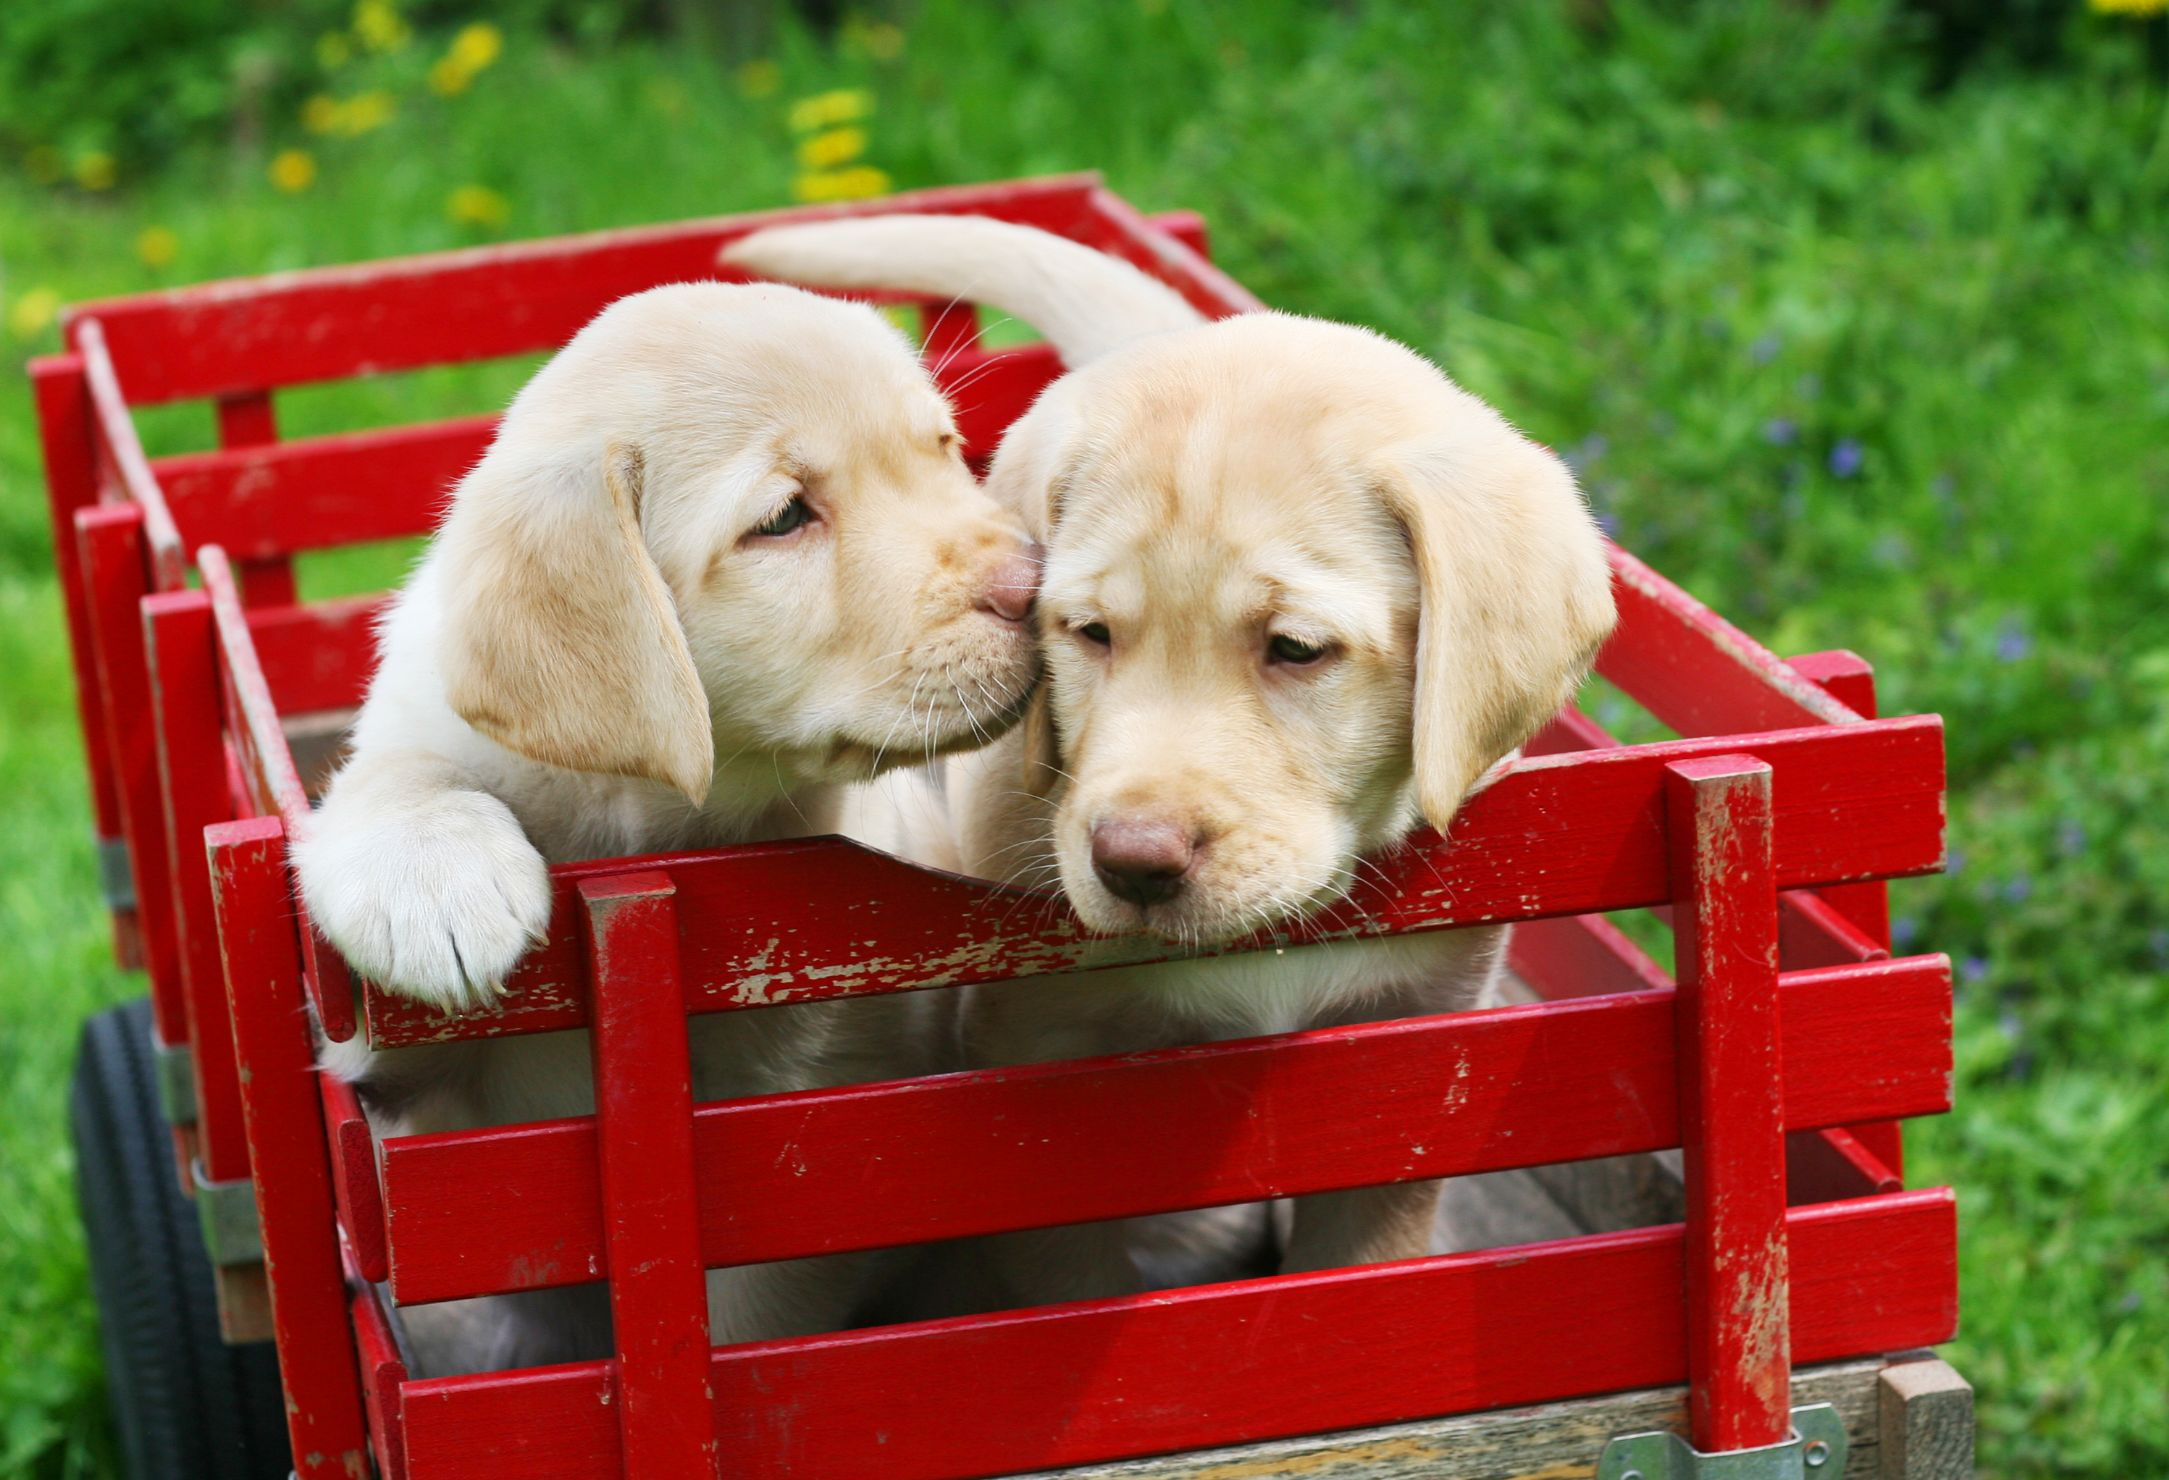 two yellow puppies in a red wagon